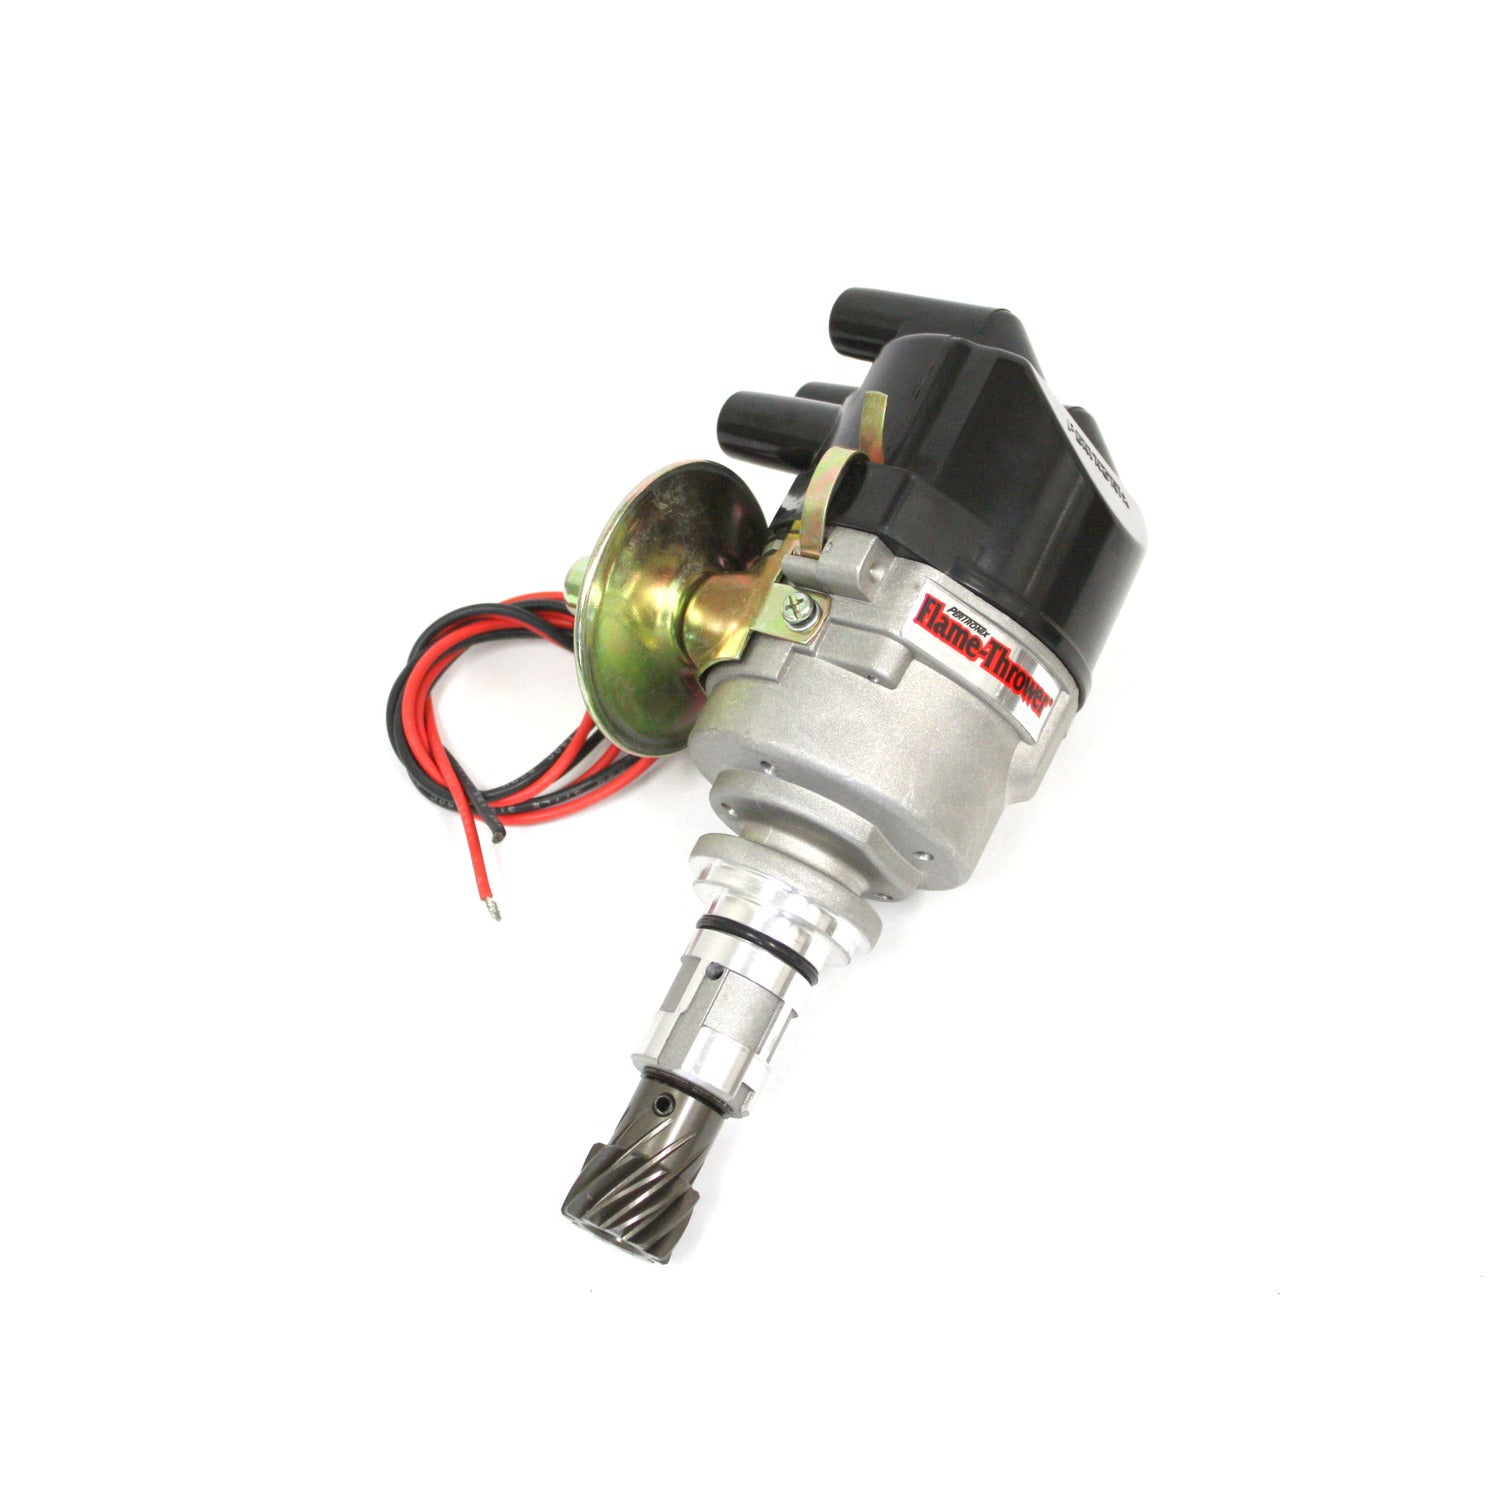 PerTronix D7190609 Flame-Thrower Electronic Distributor Side Exit Cast Ford X-Flow Plug and Play with Ignitor III Vac Adv